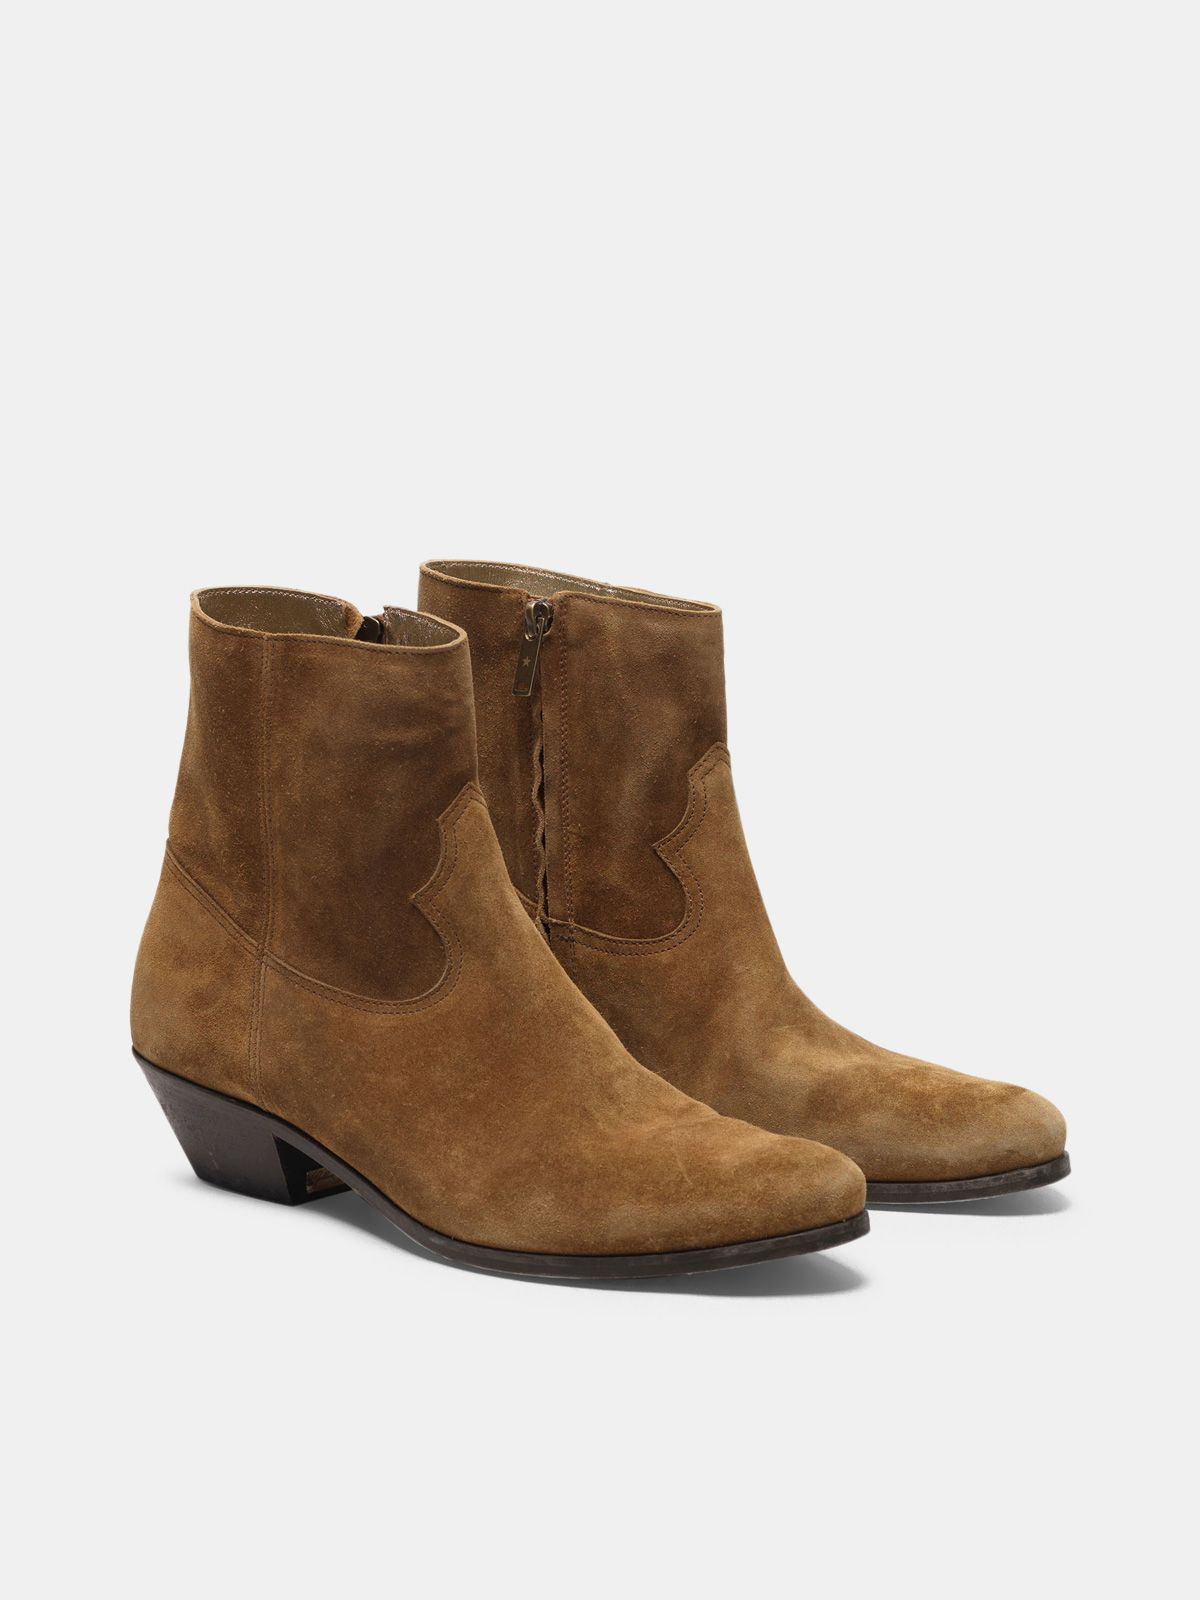 Golden Goose - Younger ankle boots in mustard suede leather in